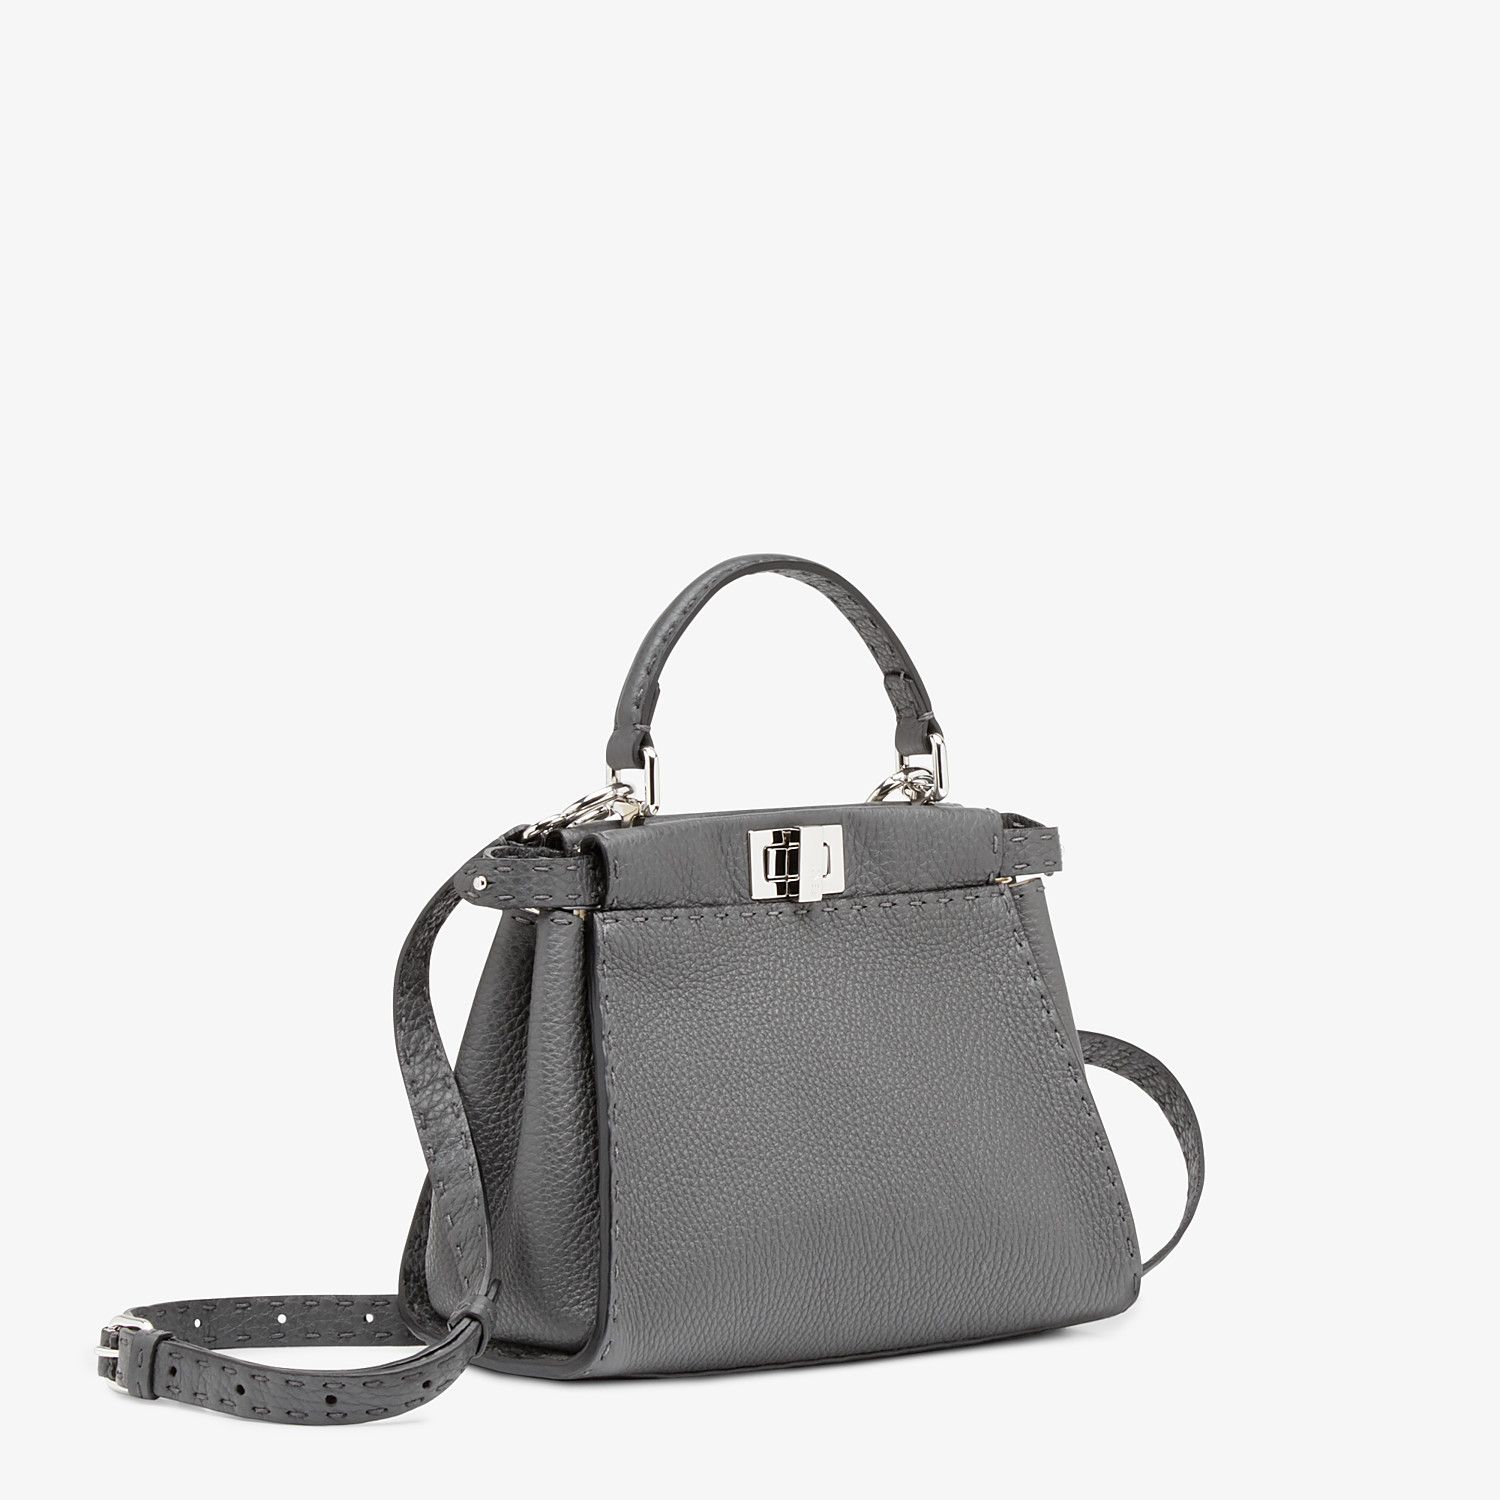 FENDI PEEKABOO ICONIC MINI - Asphalt gray Selleria bag - view 2 detail